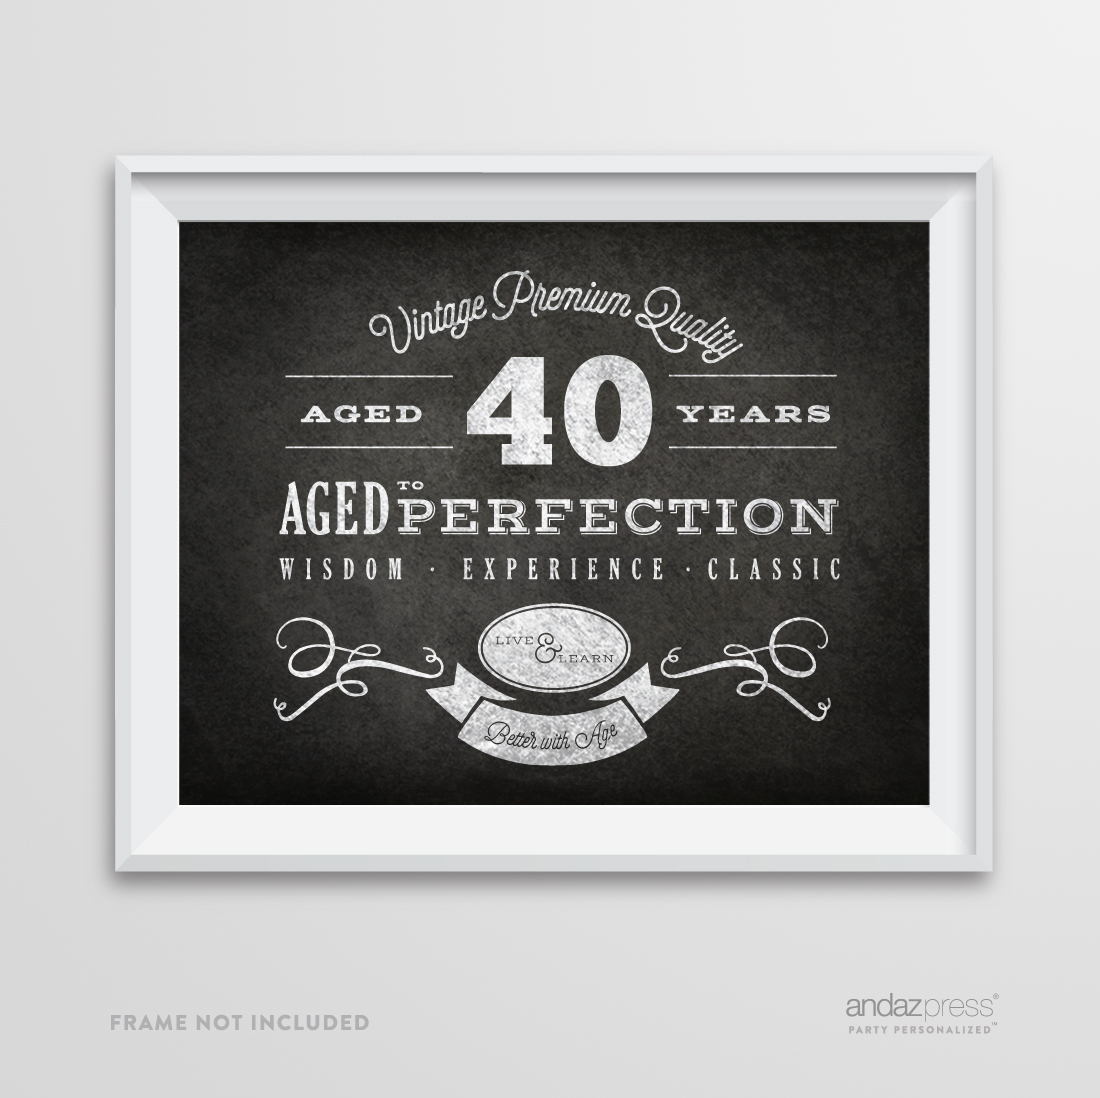 happy 40th birthday printable signs ; apc10631-andaz-press-milestone-birthday-wall-art-poster-signs-40th-birthday-gifts-and-party-decor-vintage-40-years-chalkboard-print-1-pack